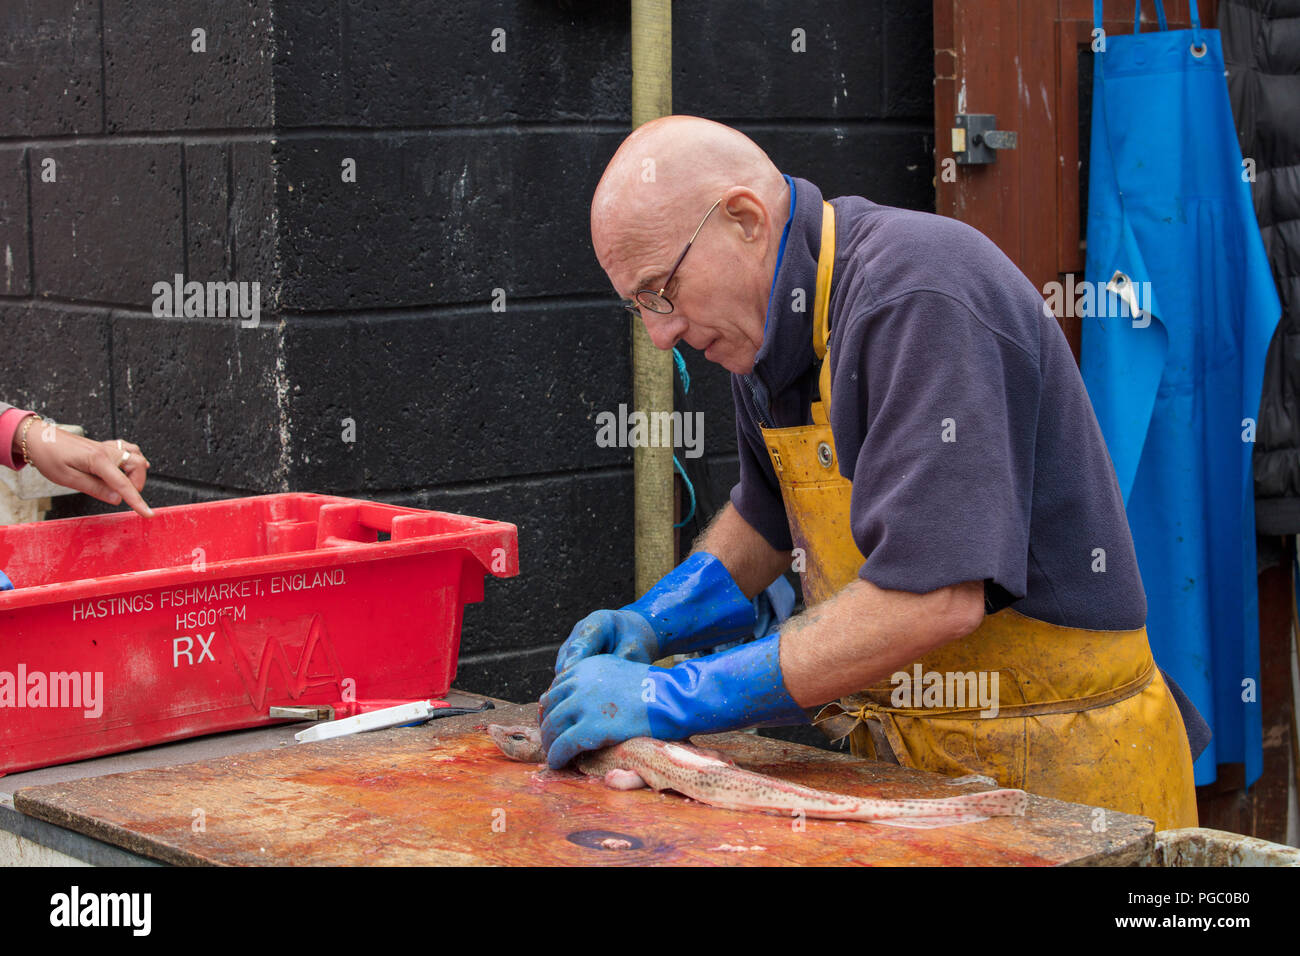 Expert, sole trader fishmonger, sells, prepares spotted cat shark on Hastings beach fish market. Curious bystanders enjoy and support local community. - Stock Image